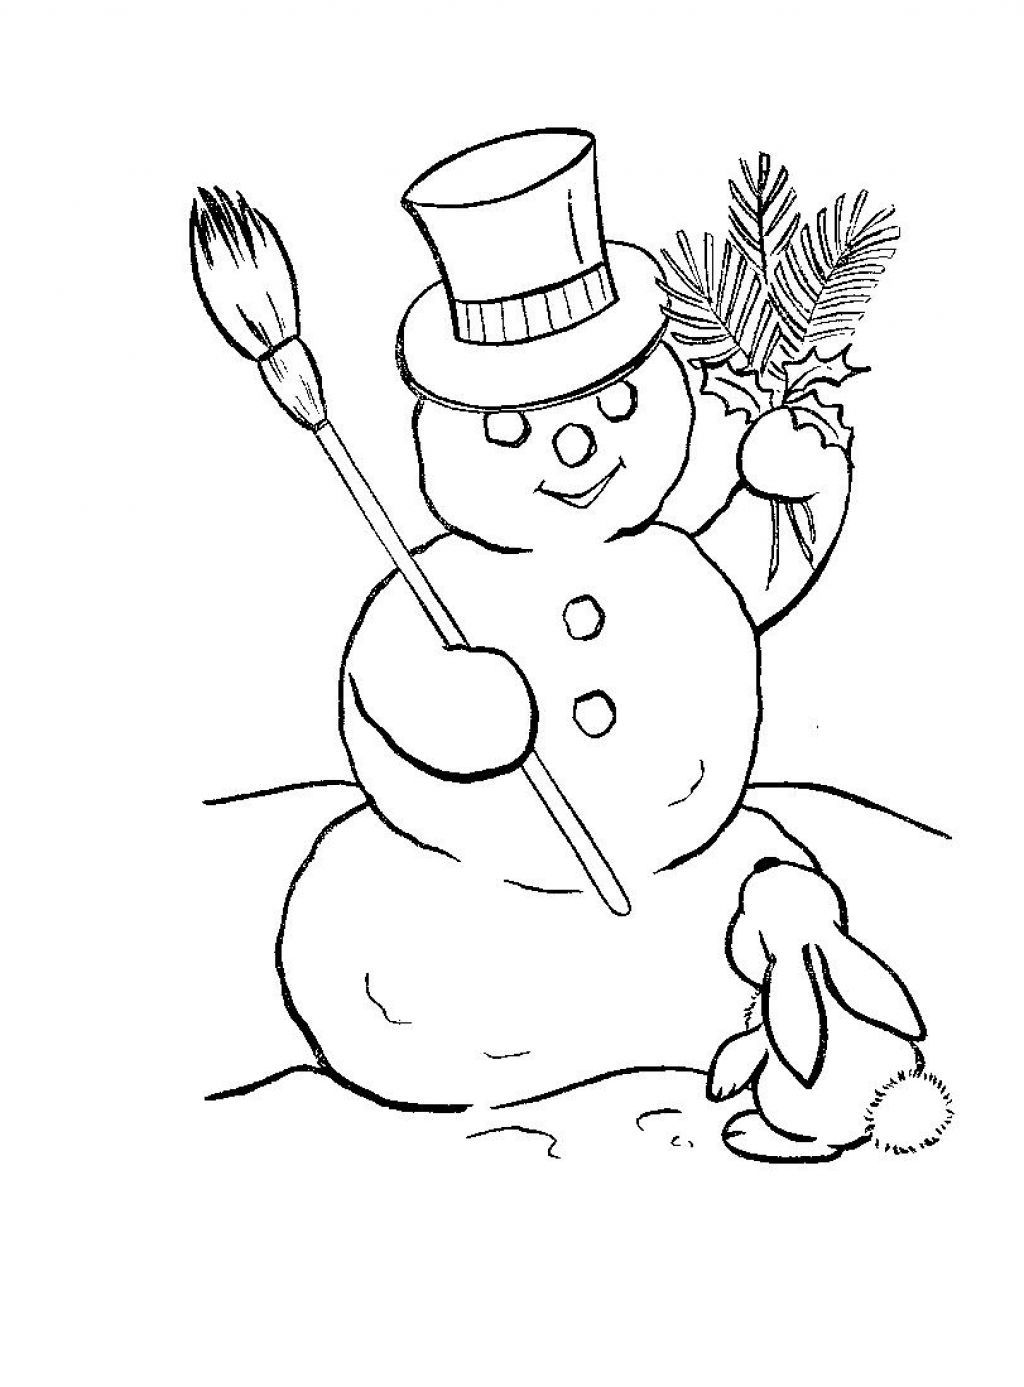 Free Printable Snowman Coloring Pages For Kids | Free coloring pages ...